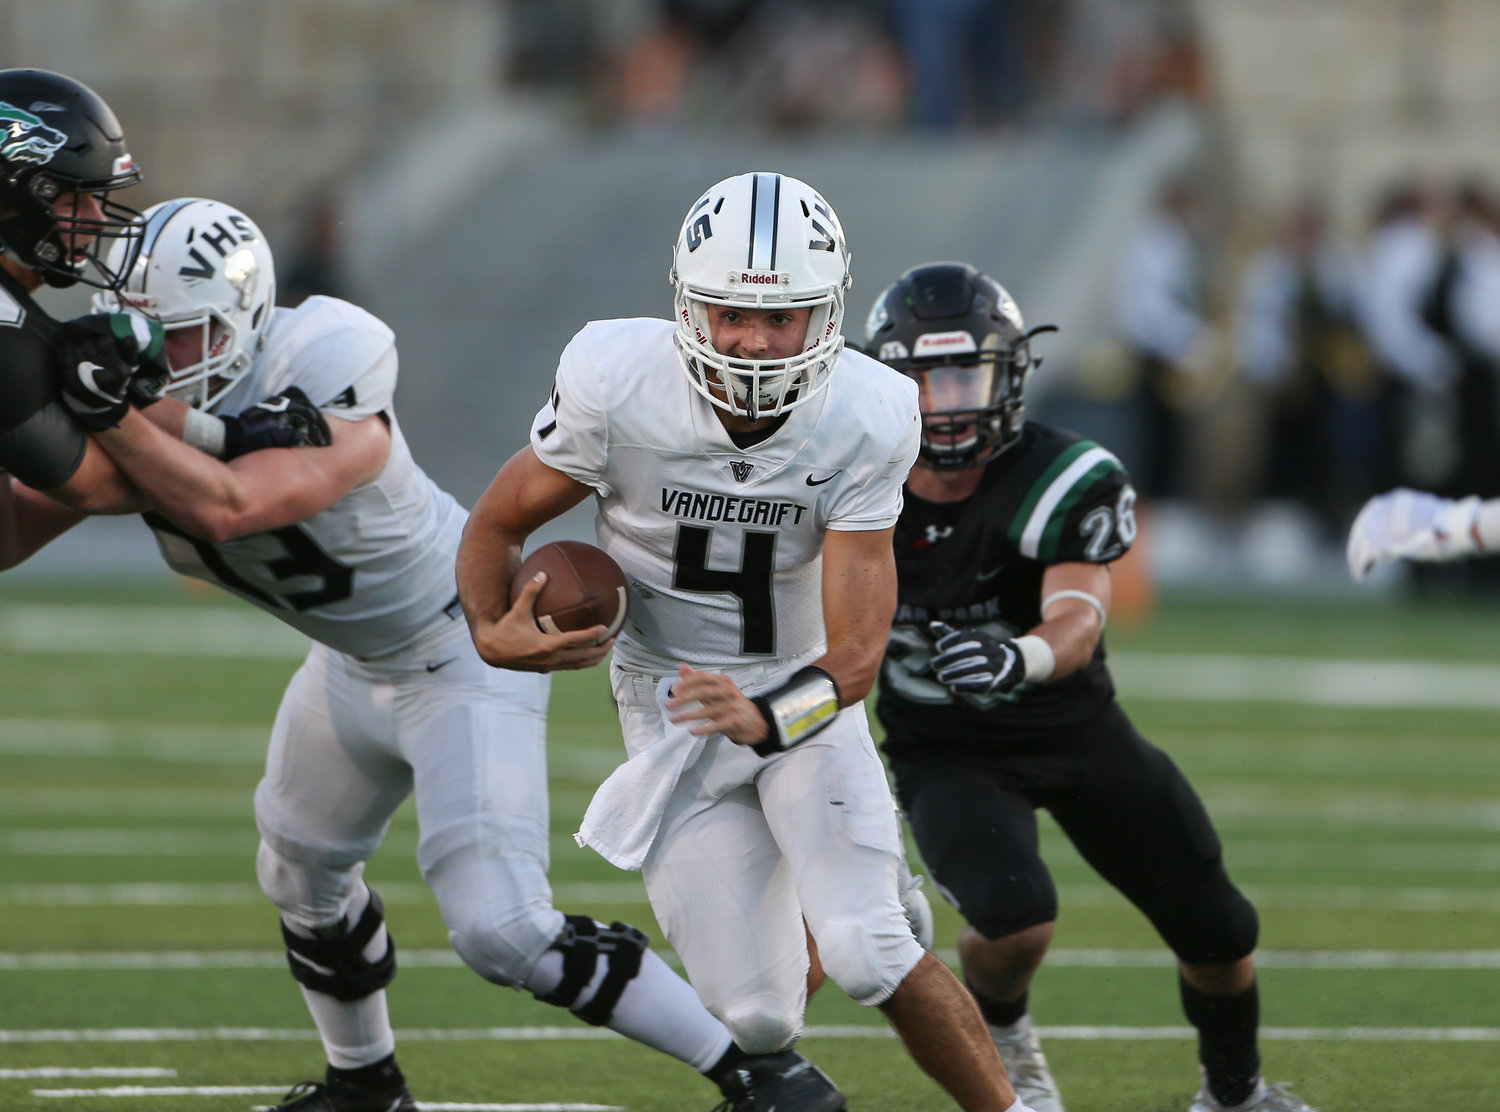 Vandegrift Vipers junior quarterback Dru Dawson (4)  carries the ball during a high school football game between the Cedar Park Timberwolves and the Vandegrift Vipers on Friday, Aug. 31, 2018 in Cedar Park, Texas.